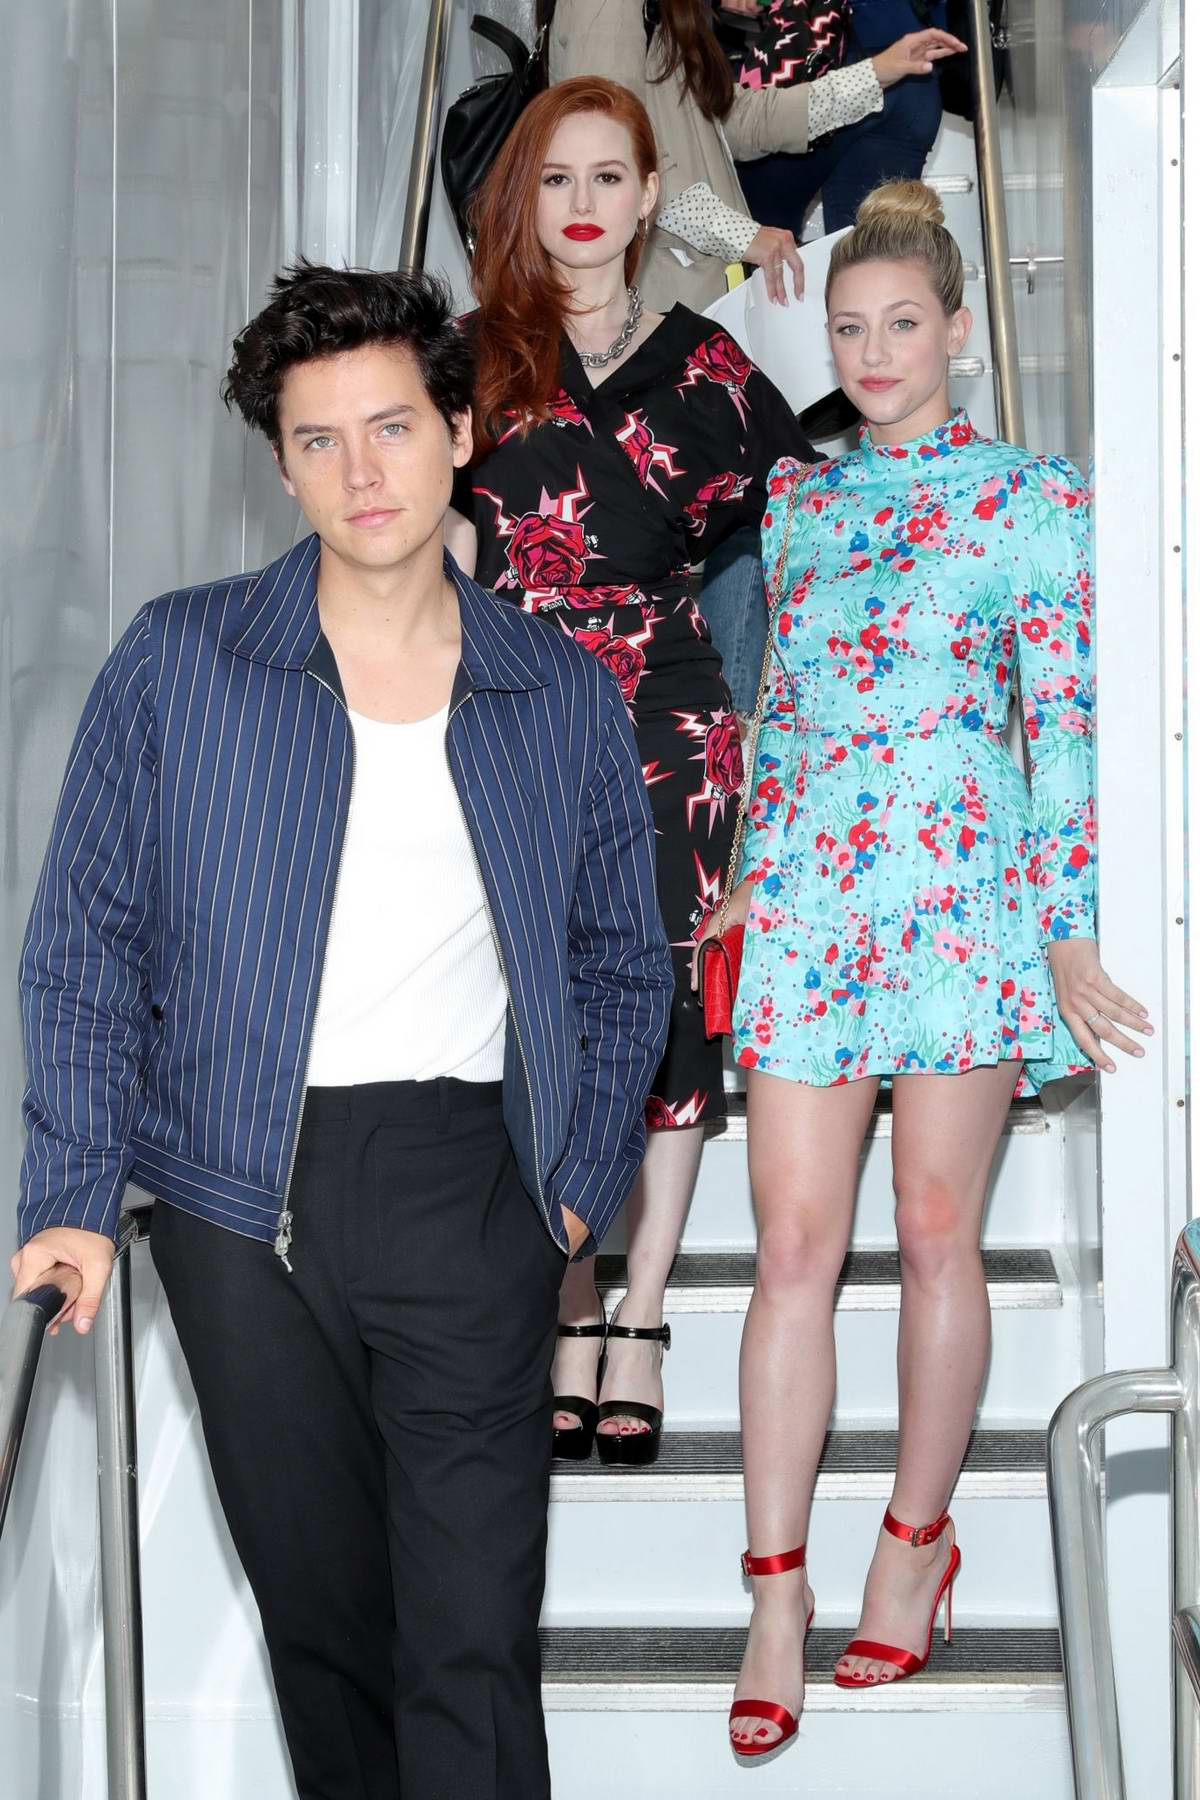 Lili Reinhart and Madelaine Petsch attend the #IMDboat at the IMDb Yacht during 2019 Comic-Con in San Diego, California